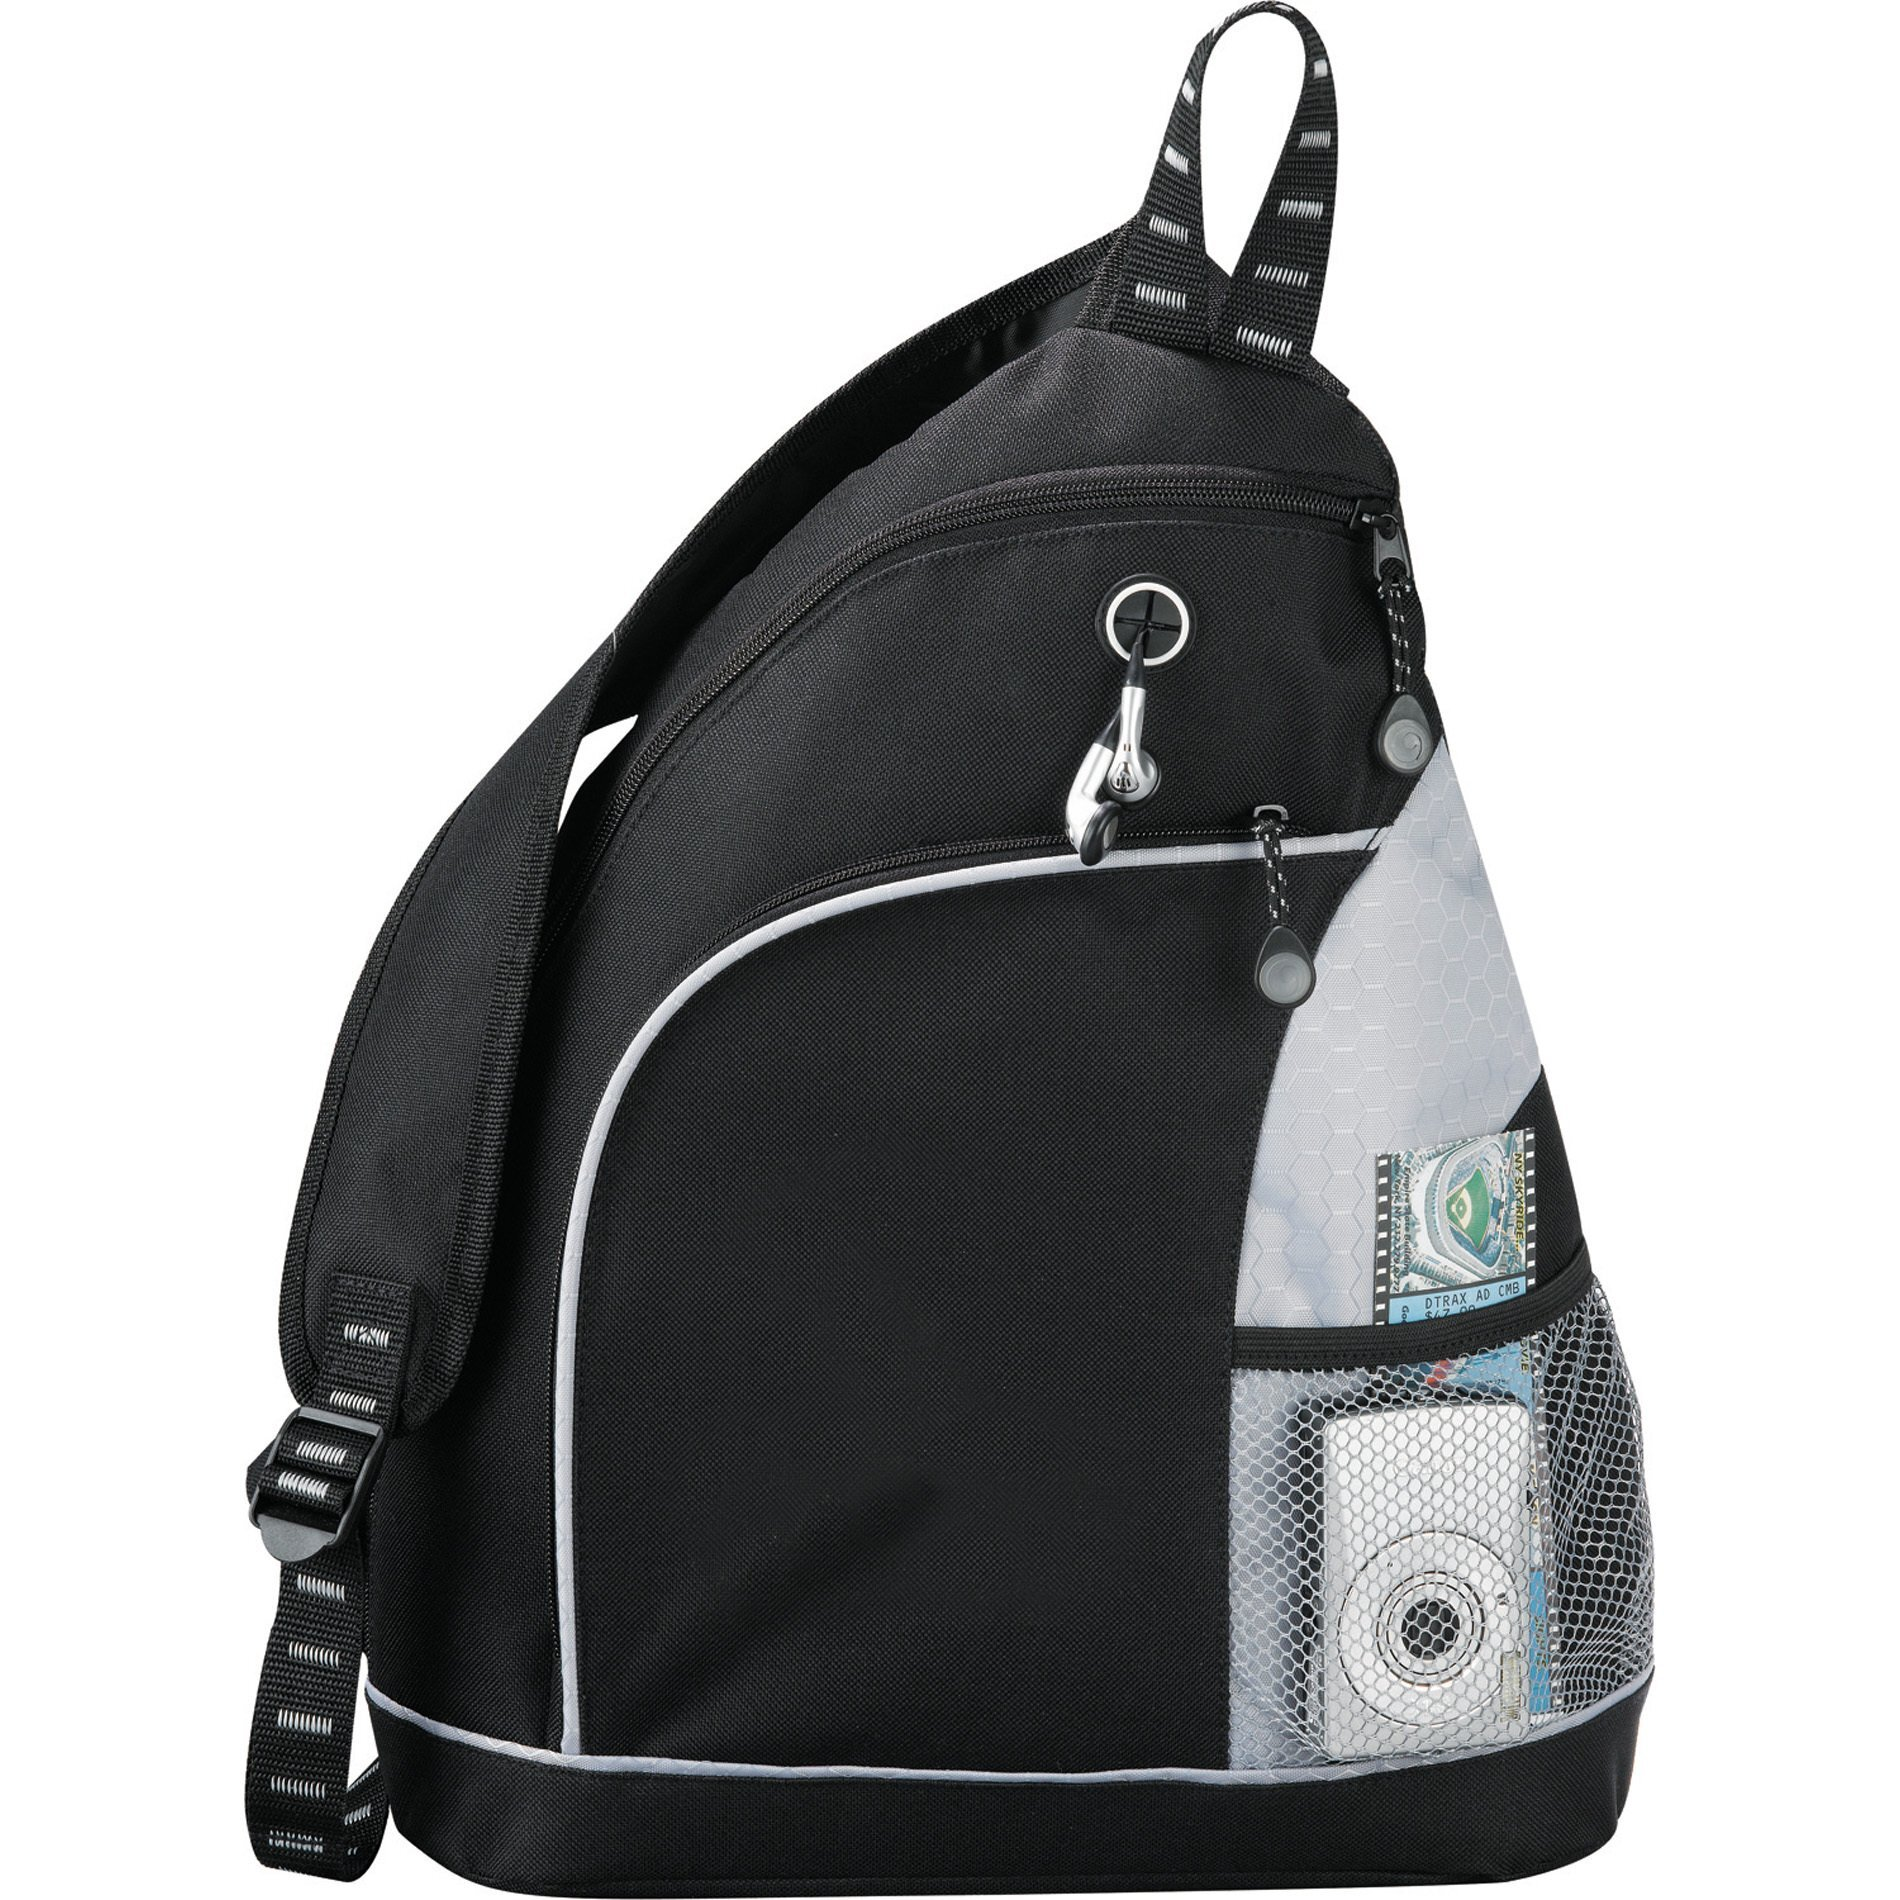 Twister Sling Backpack